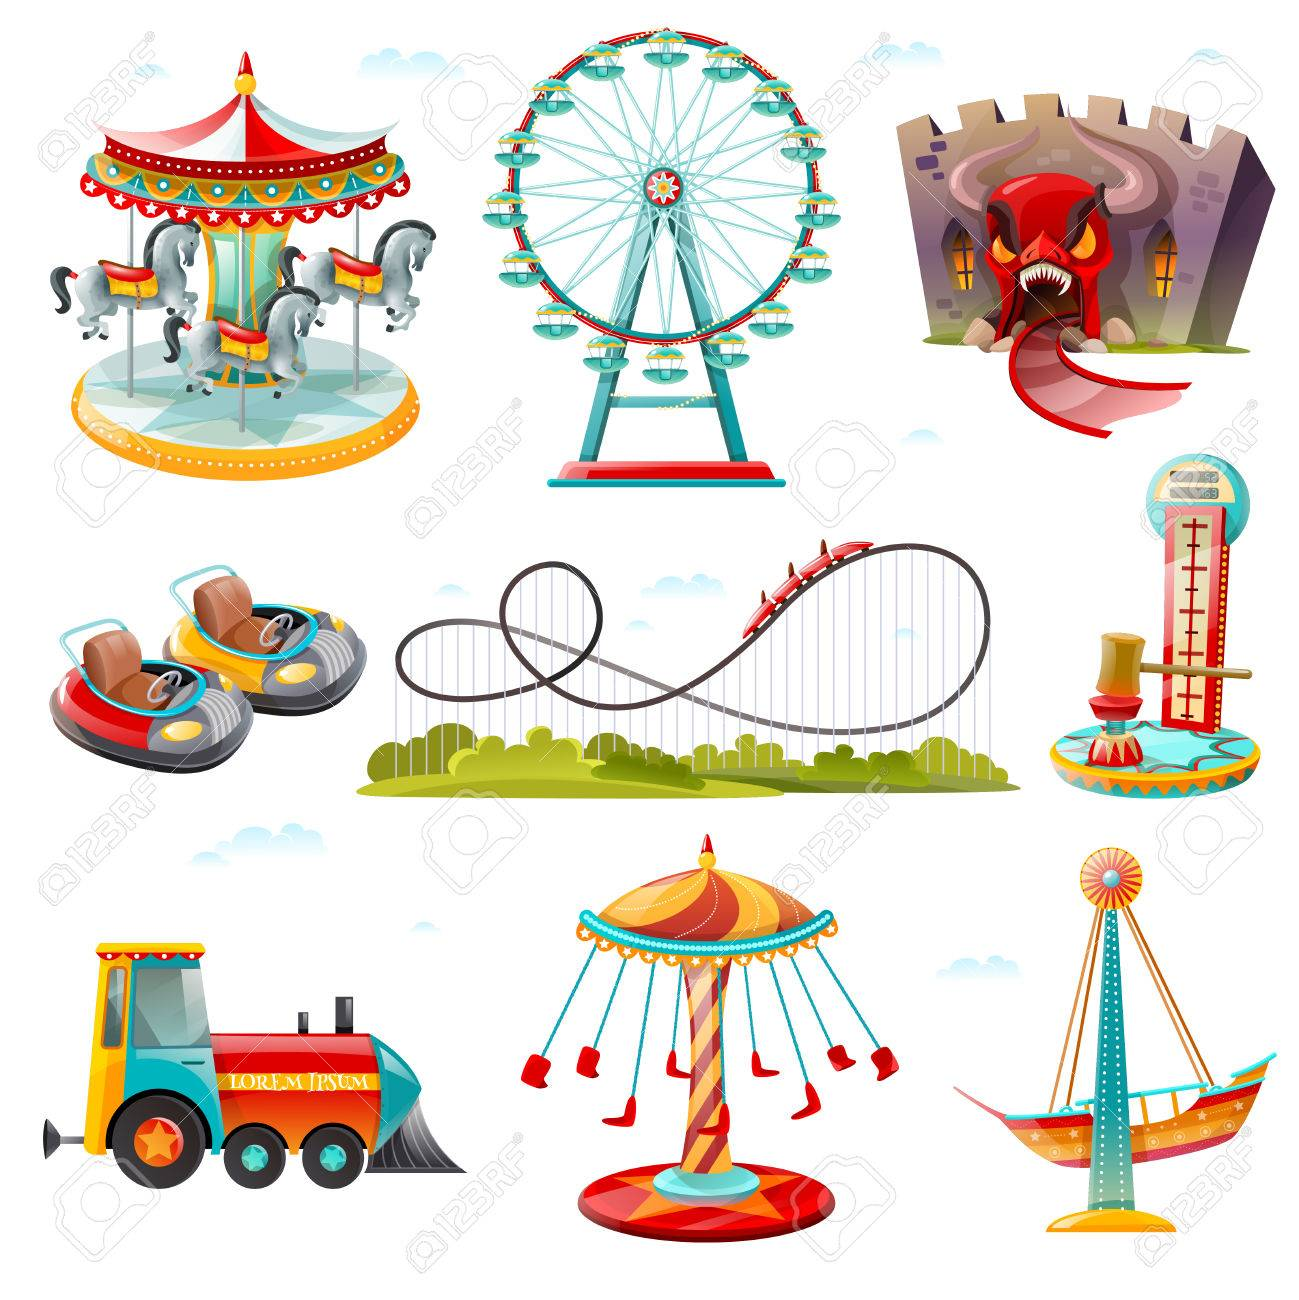 Amusement clipart fair ride Transparent pictures on F.